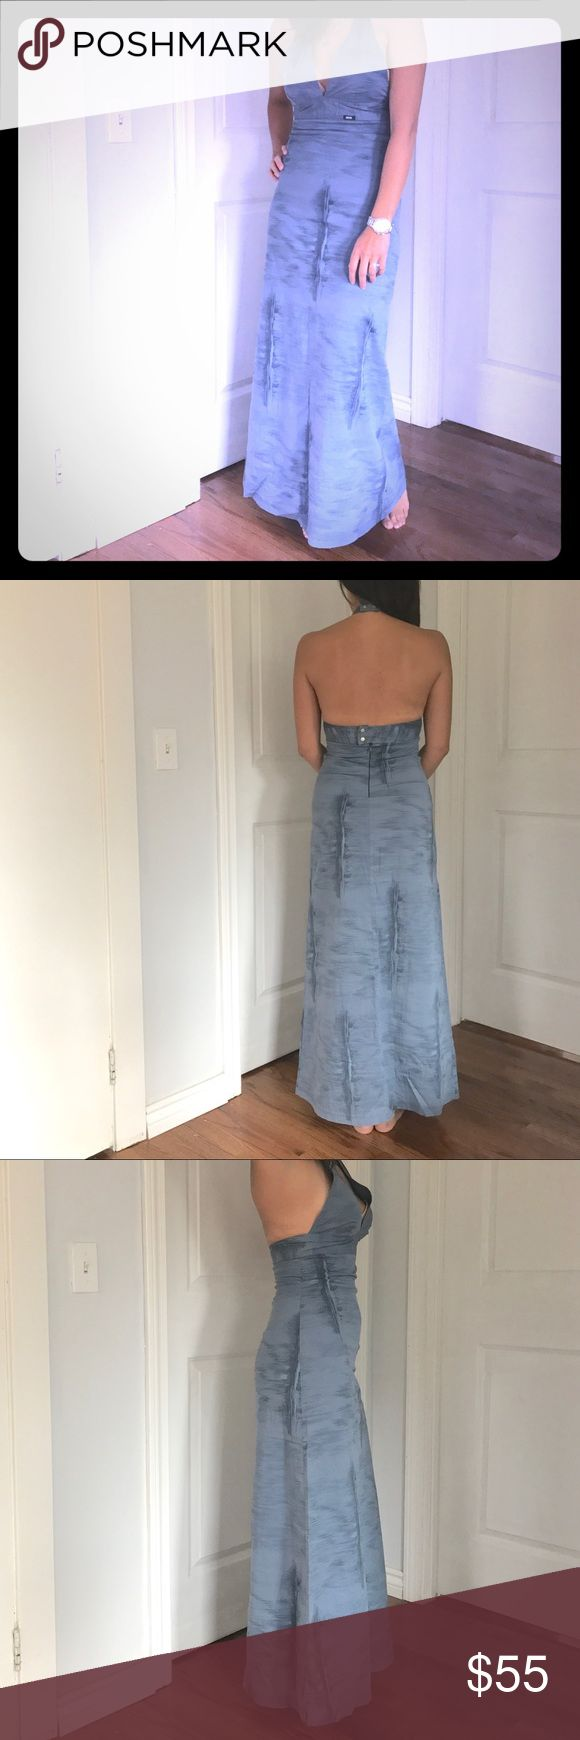 """Diesel denim look halter maxi dress Beautiful DIESEL sexy halter dress in denim look. Fabric is very comfortable. It says size M and fits between small and medium. Person in photo is 5'6"""" 130lbs. Wear it with flats or heels. Only worn a couple of time. Super clean from a smoke free home. Diesel Dresses Maxi"""